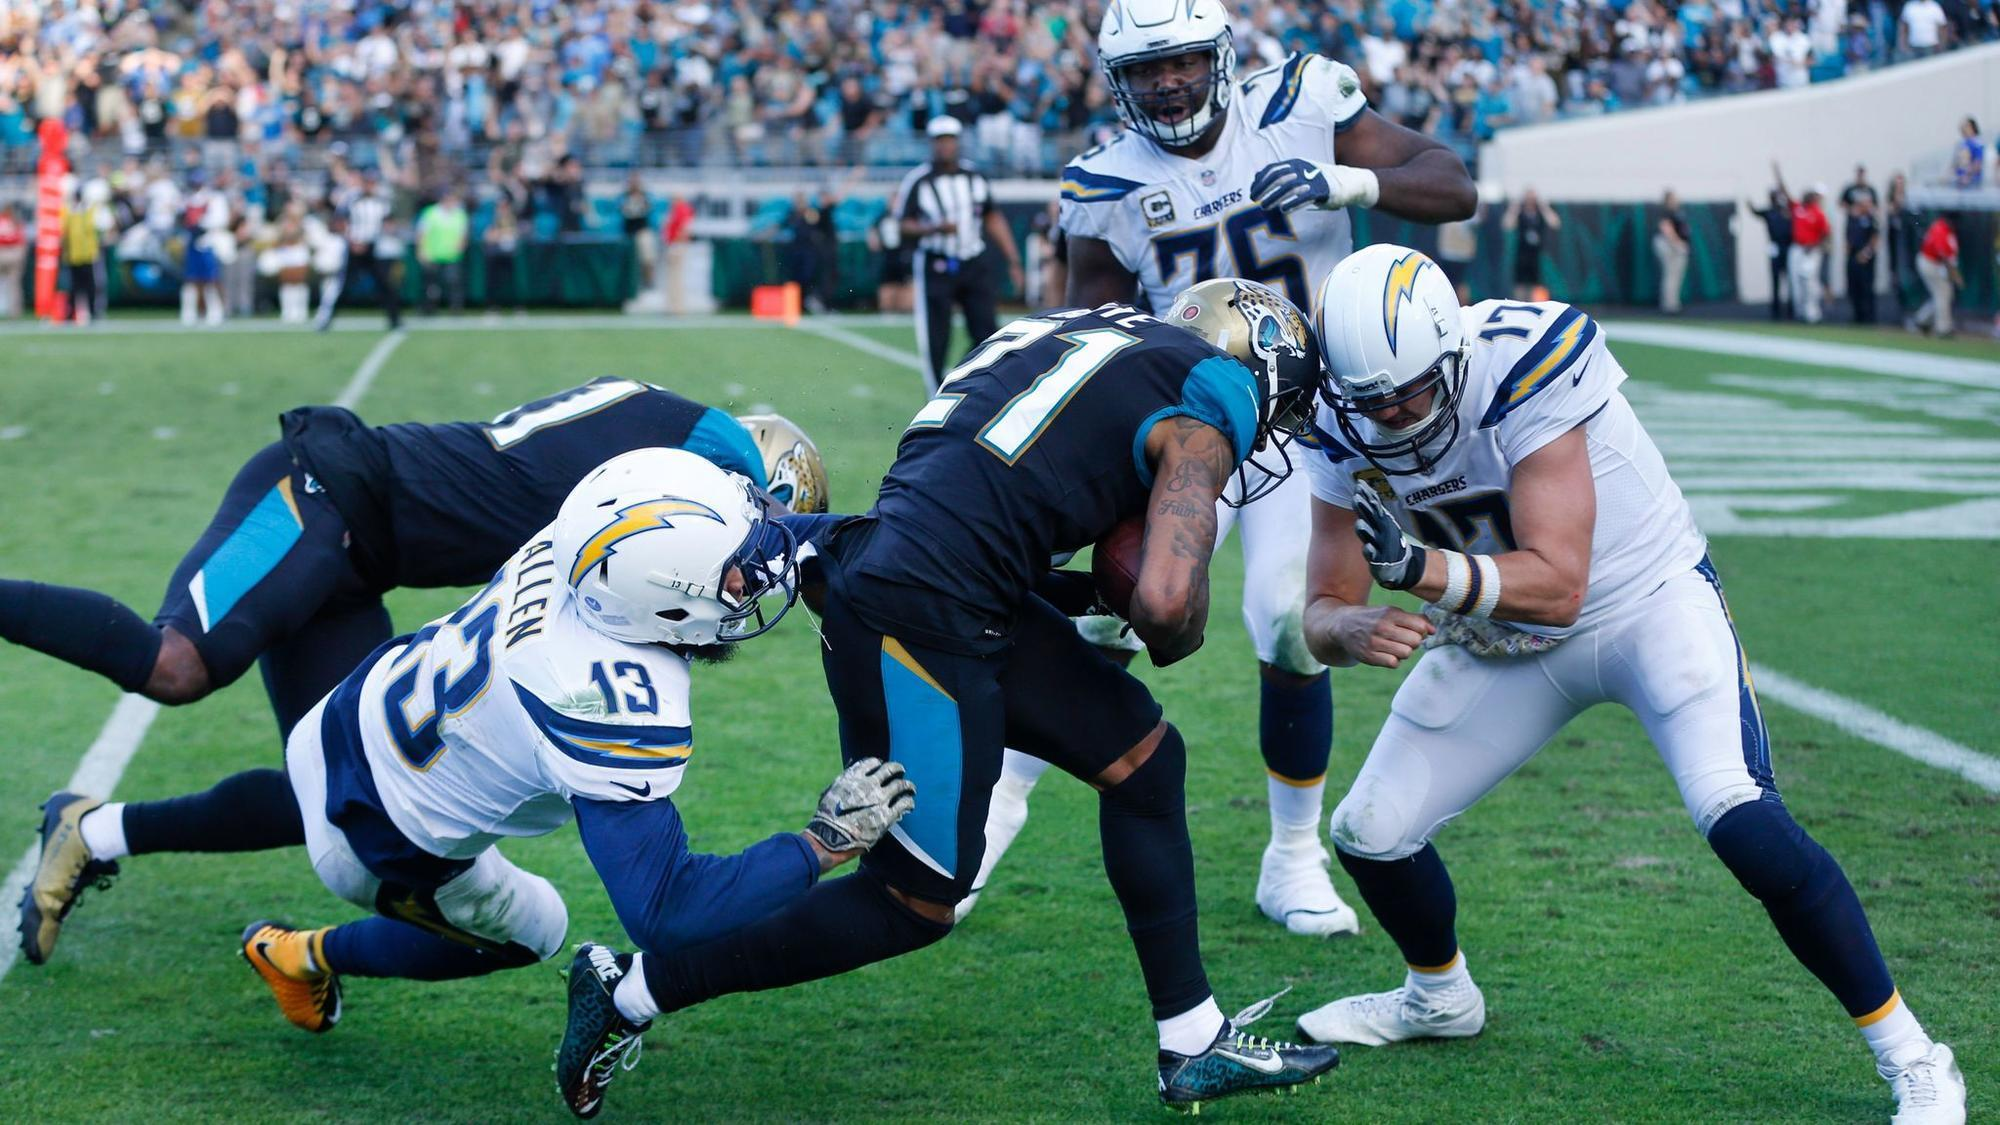 Sd-sp-chargers-philip-rivers-still-has-some-good-nfl-traits-and-should-stick-with-chargers-for-at-least-another-year-20171114